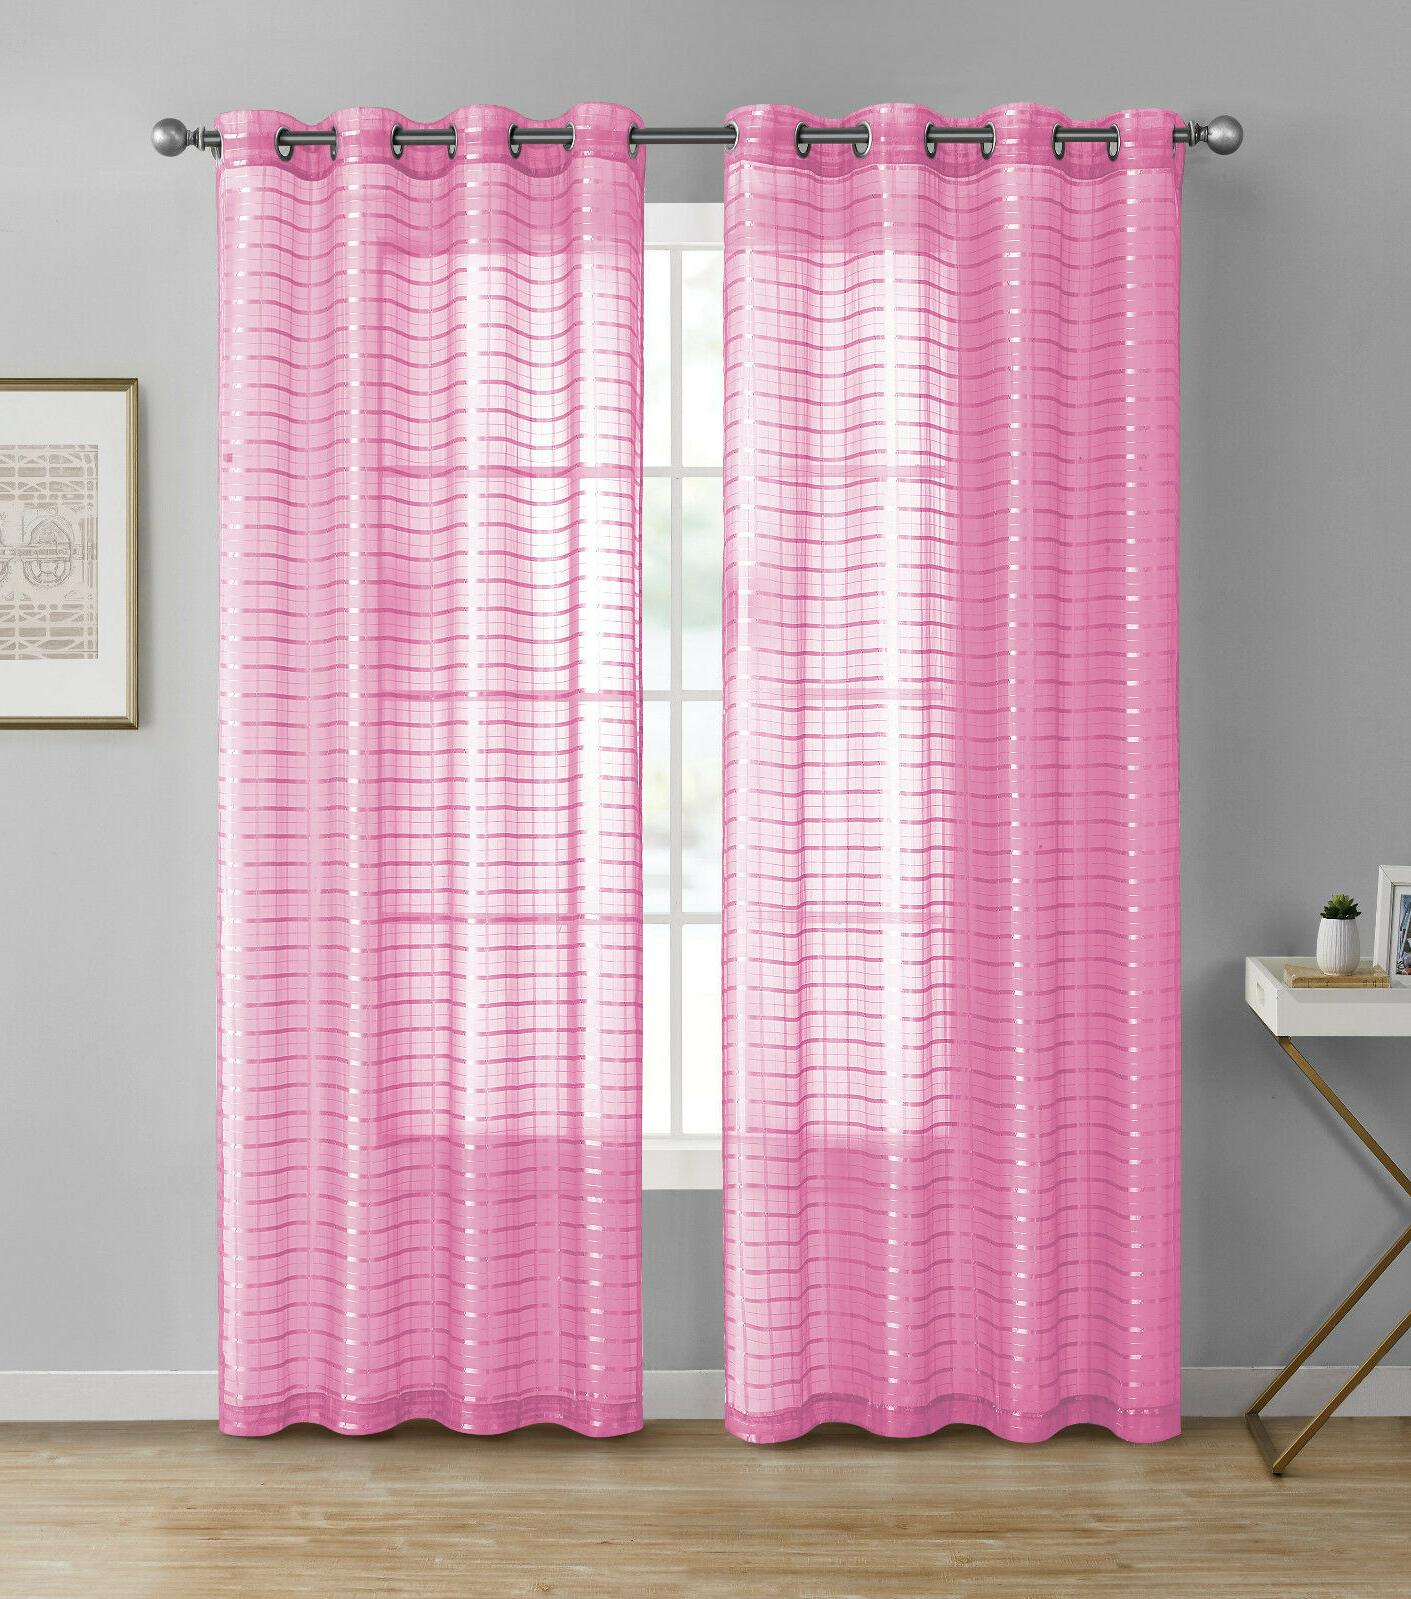 2 Pack: Plaid Grommet Curtains Assorted Colors